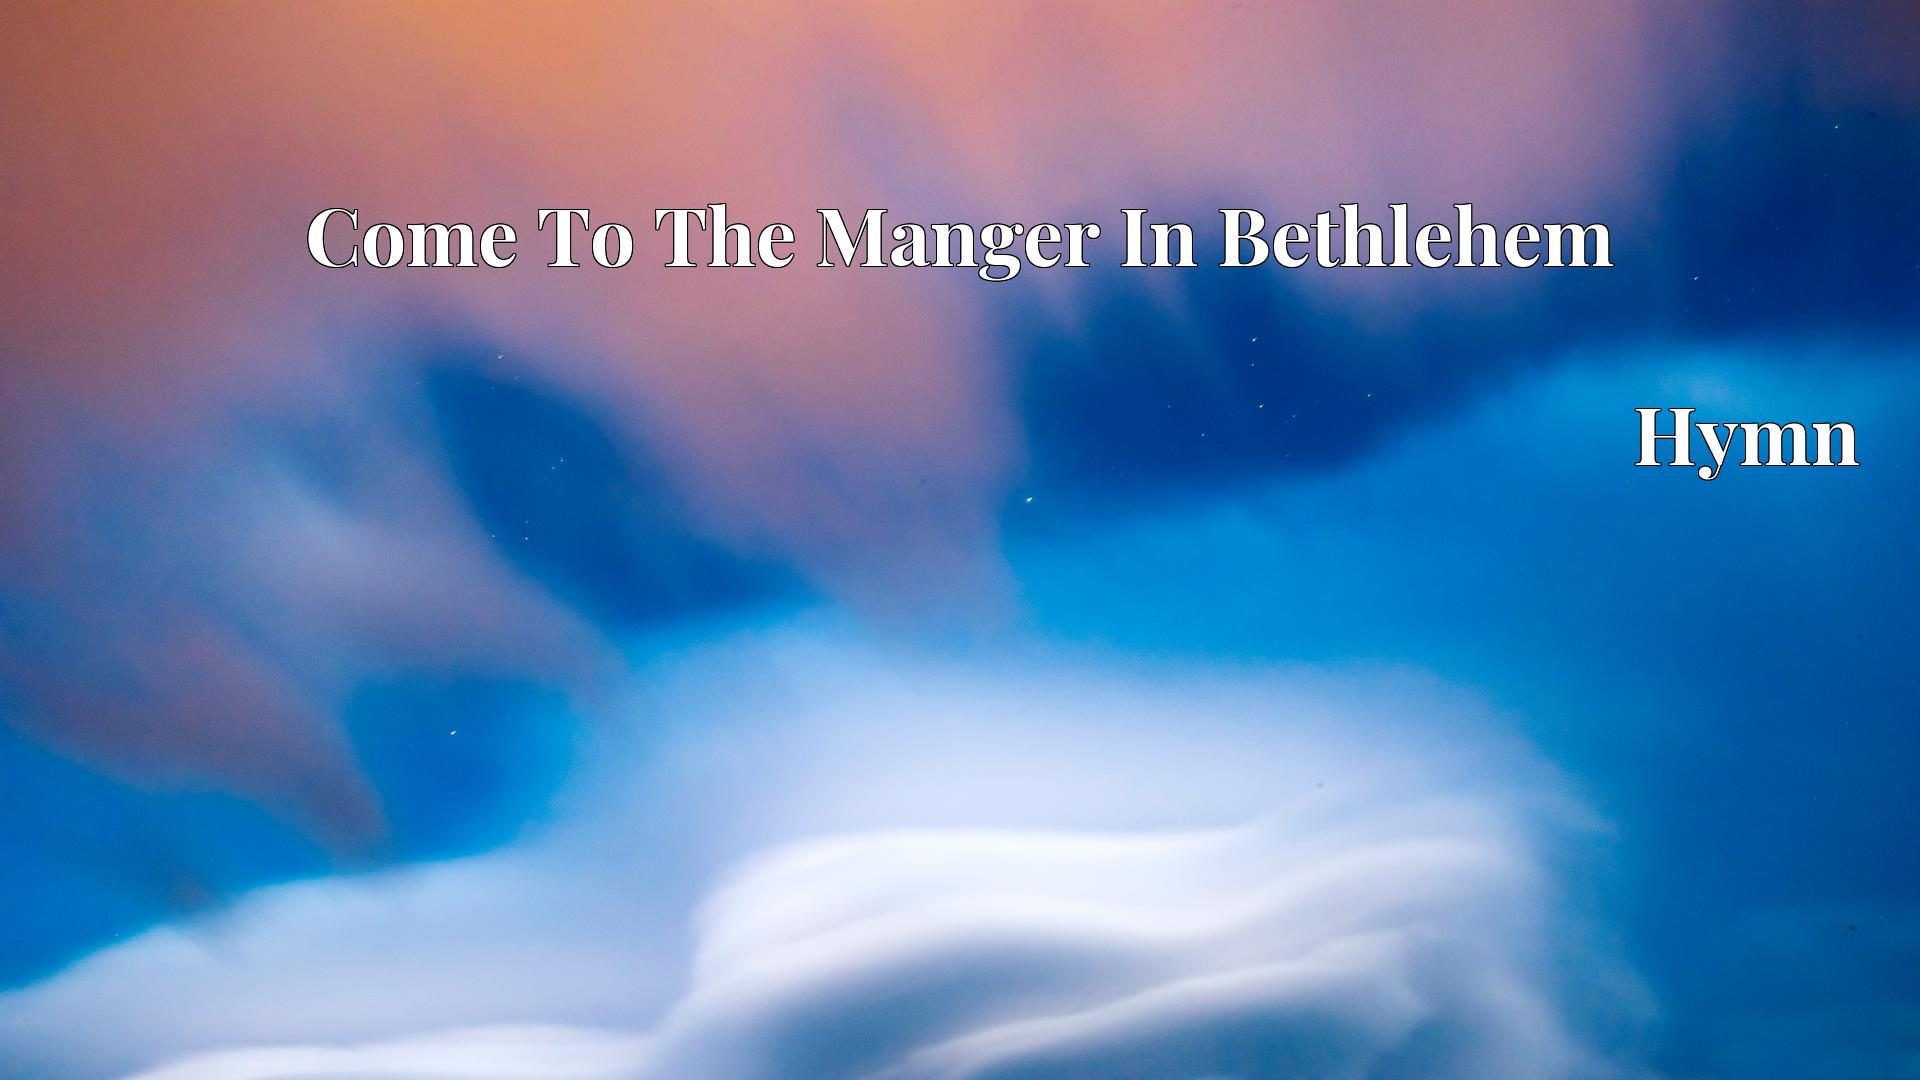 Come To The Manger In Bethlehem - Hymn